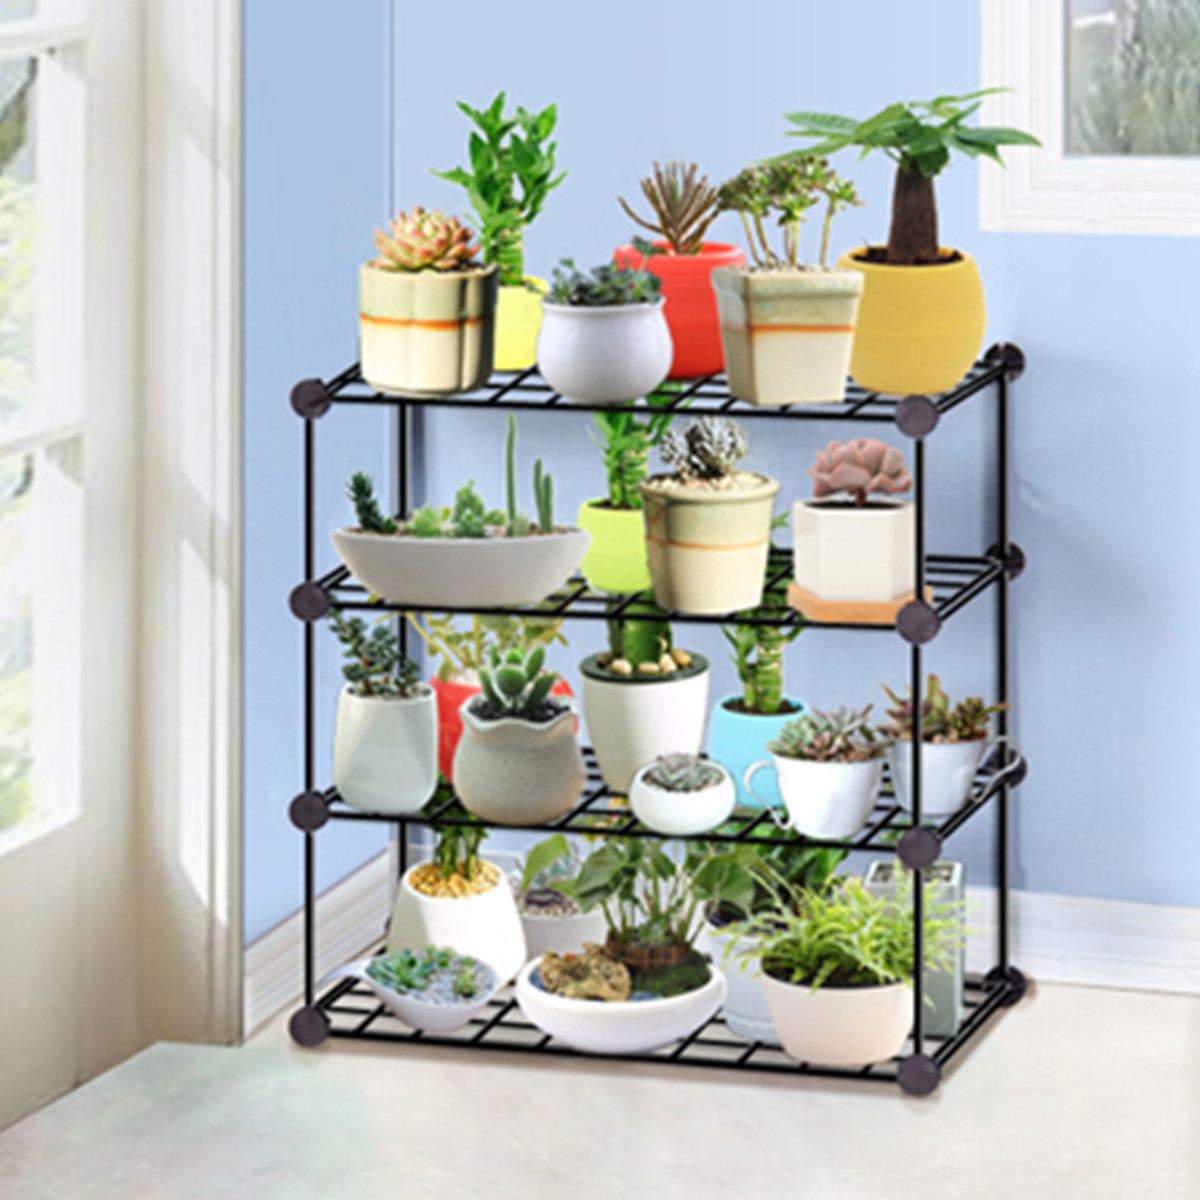 Household Wrought Iron Multi-layer Plant stand Succulent Shelf Rack Balcony Simple Indoor Coffee Bar Garden Flower Pot ShelfHousehold Wrought Iron Multi-layer Plant stand Succulent Shelf Rack Balcony Simple Indoor Coffee Bar Garden Flower Pot Shelf